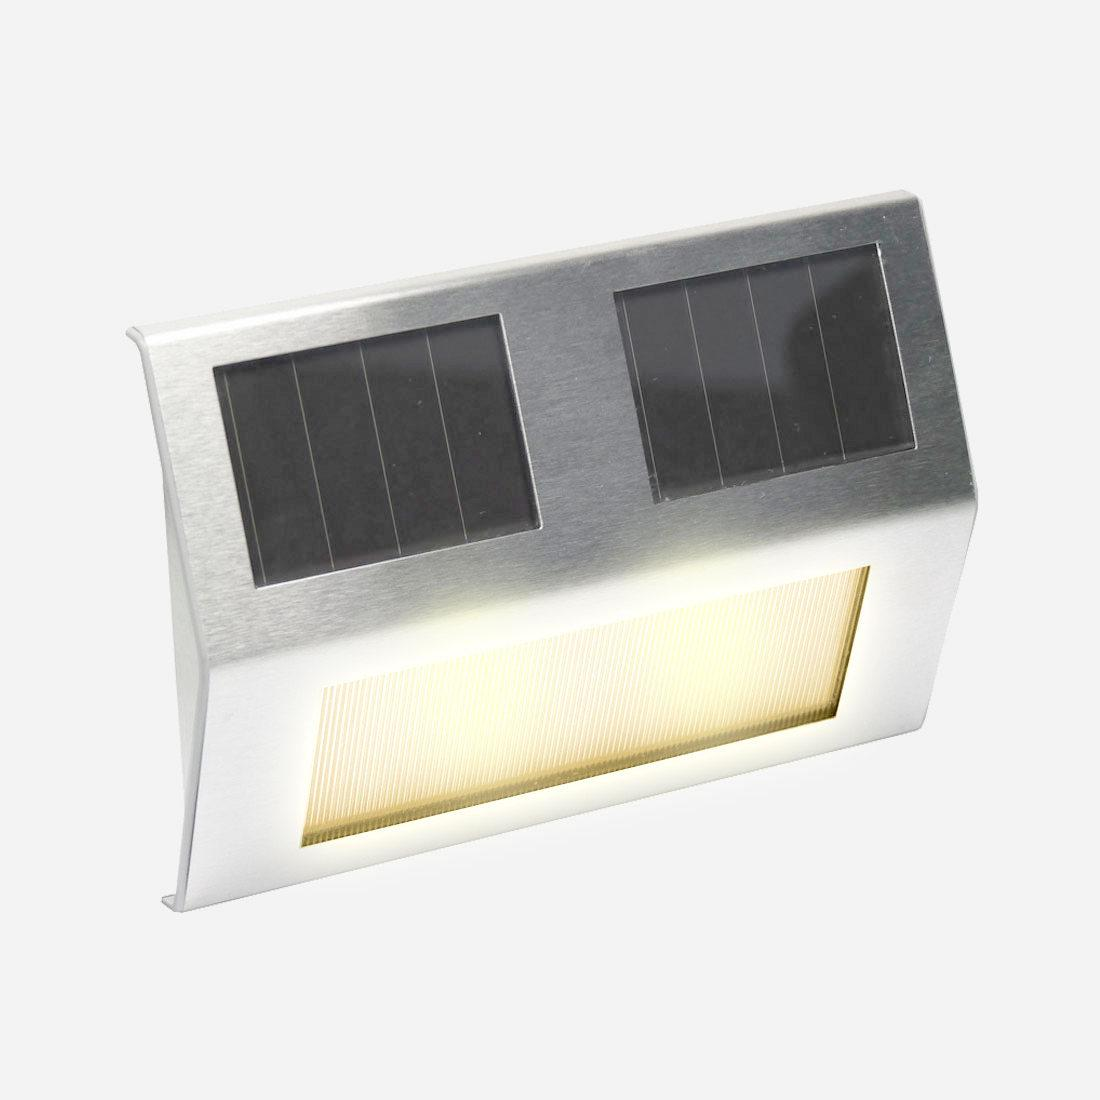 POWERplus Goldfinch Multifunctional LED Solar Light